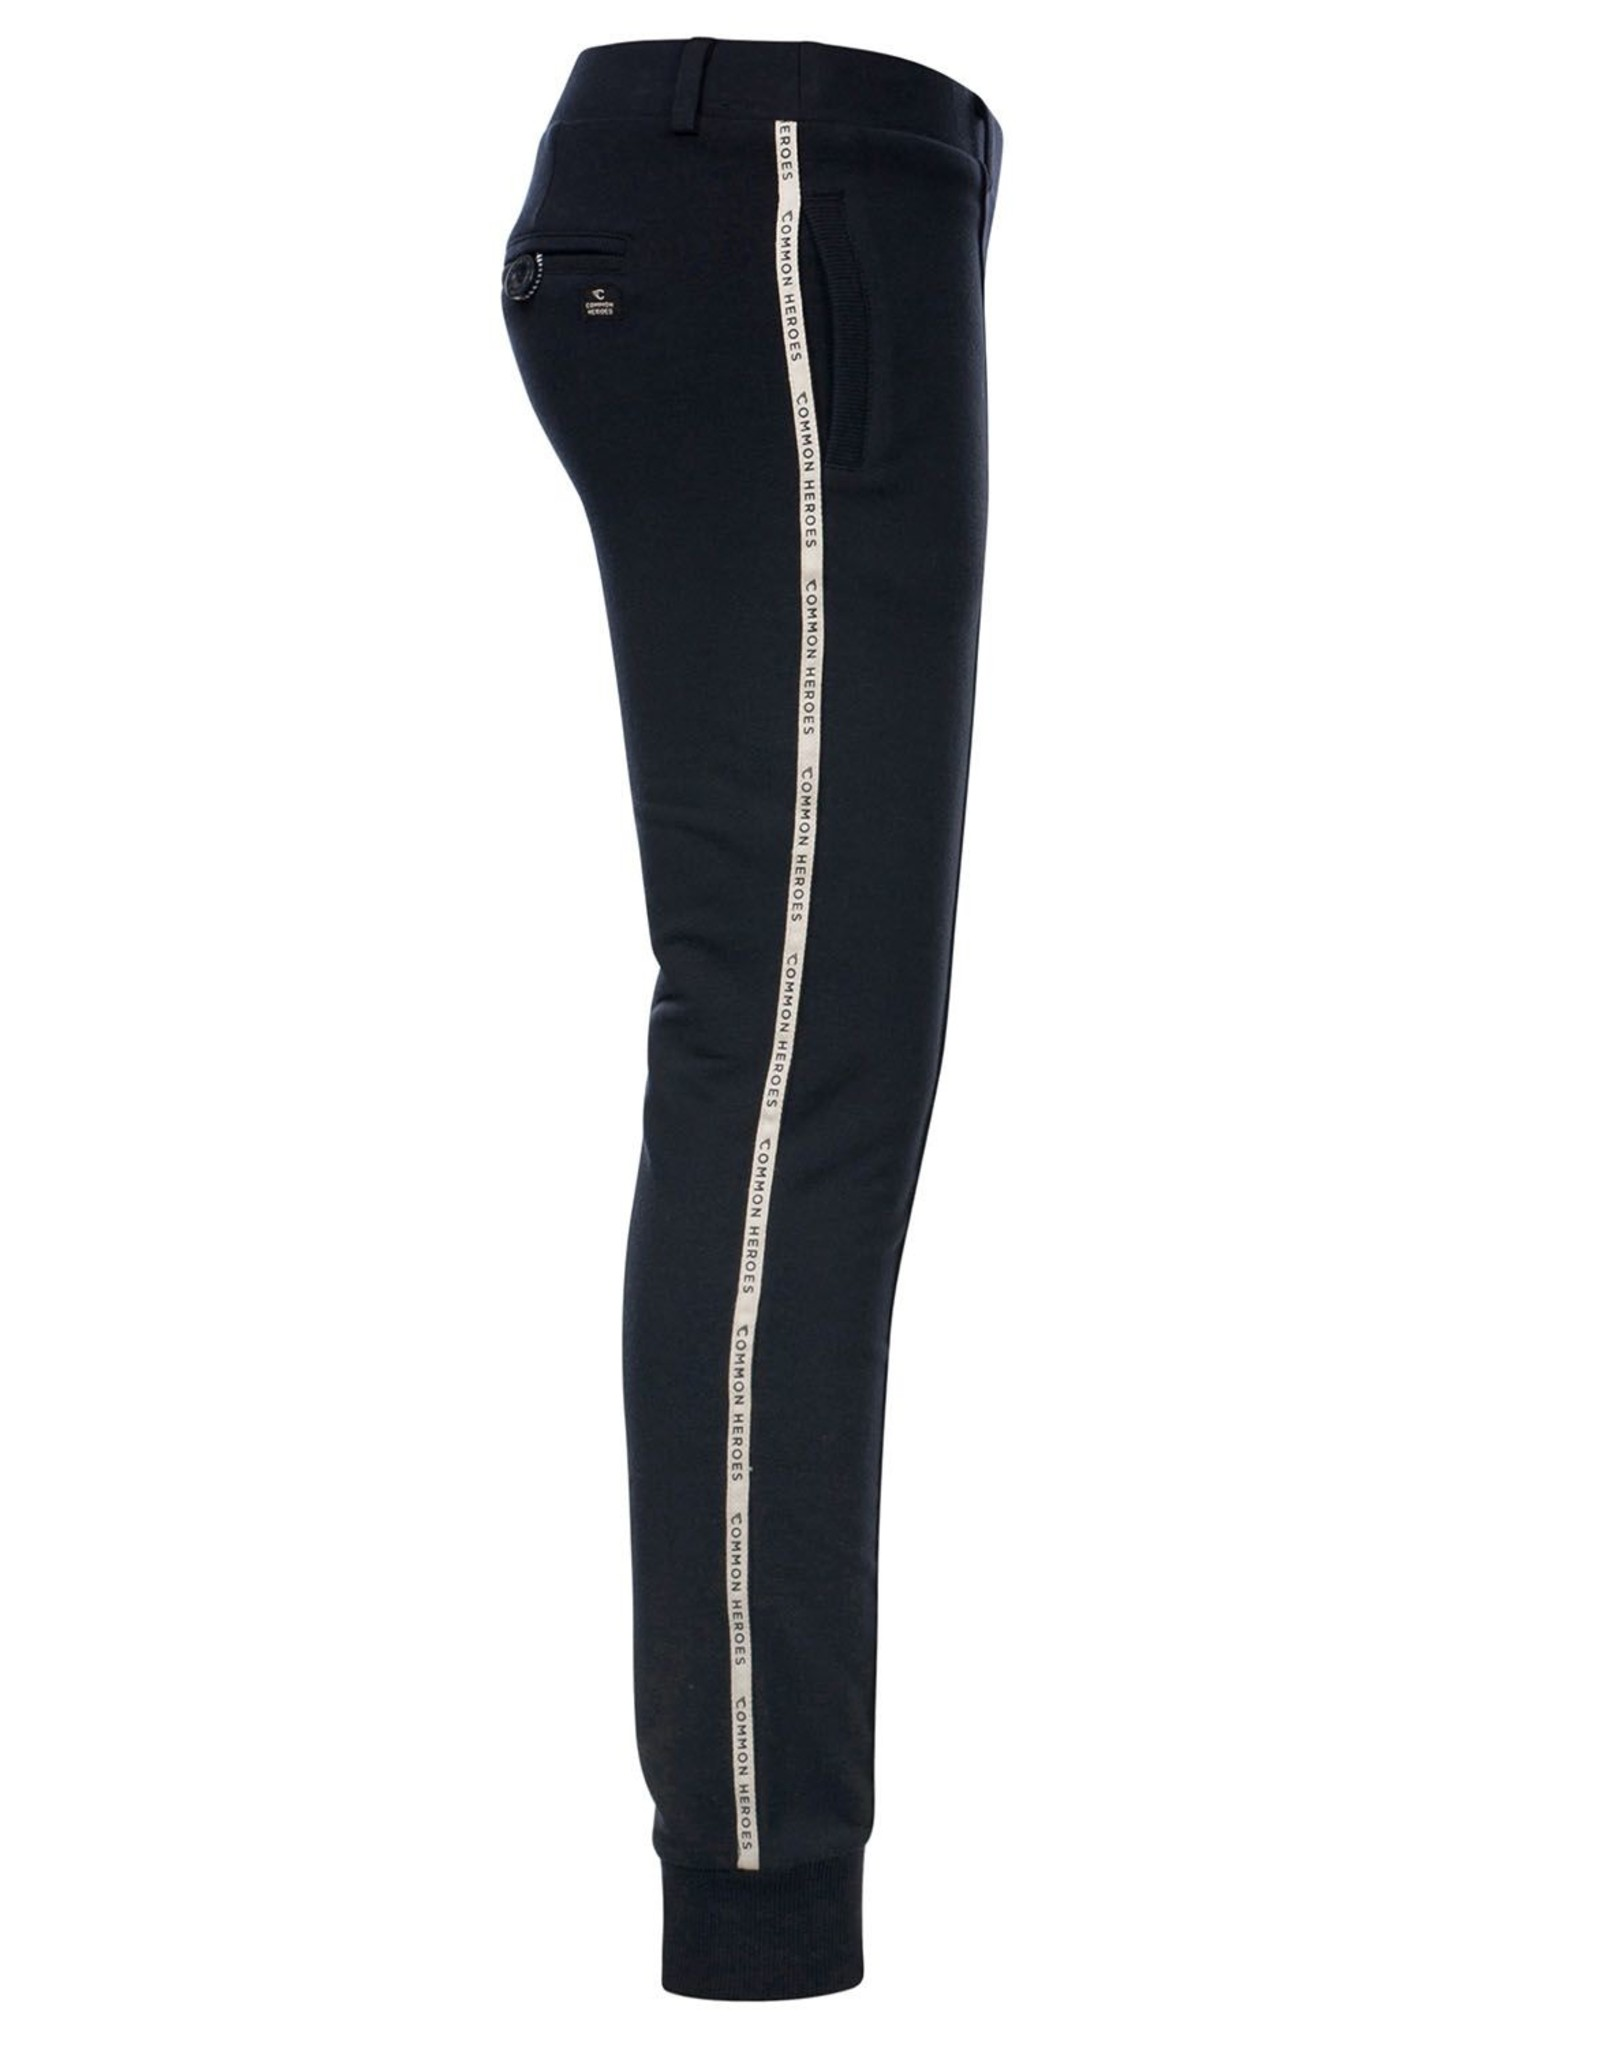 Common Heroes BOOT sweat pants with lycra